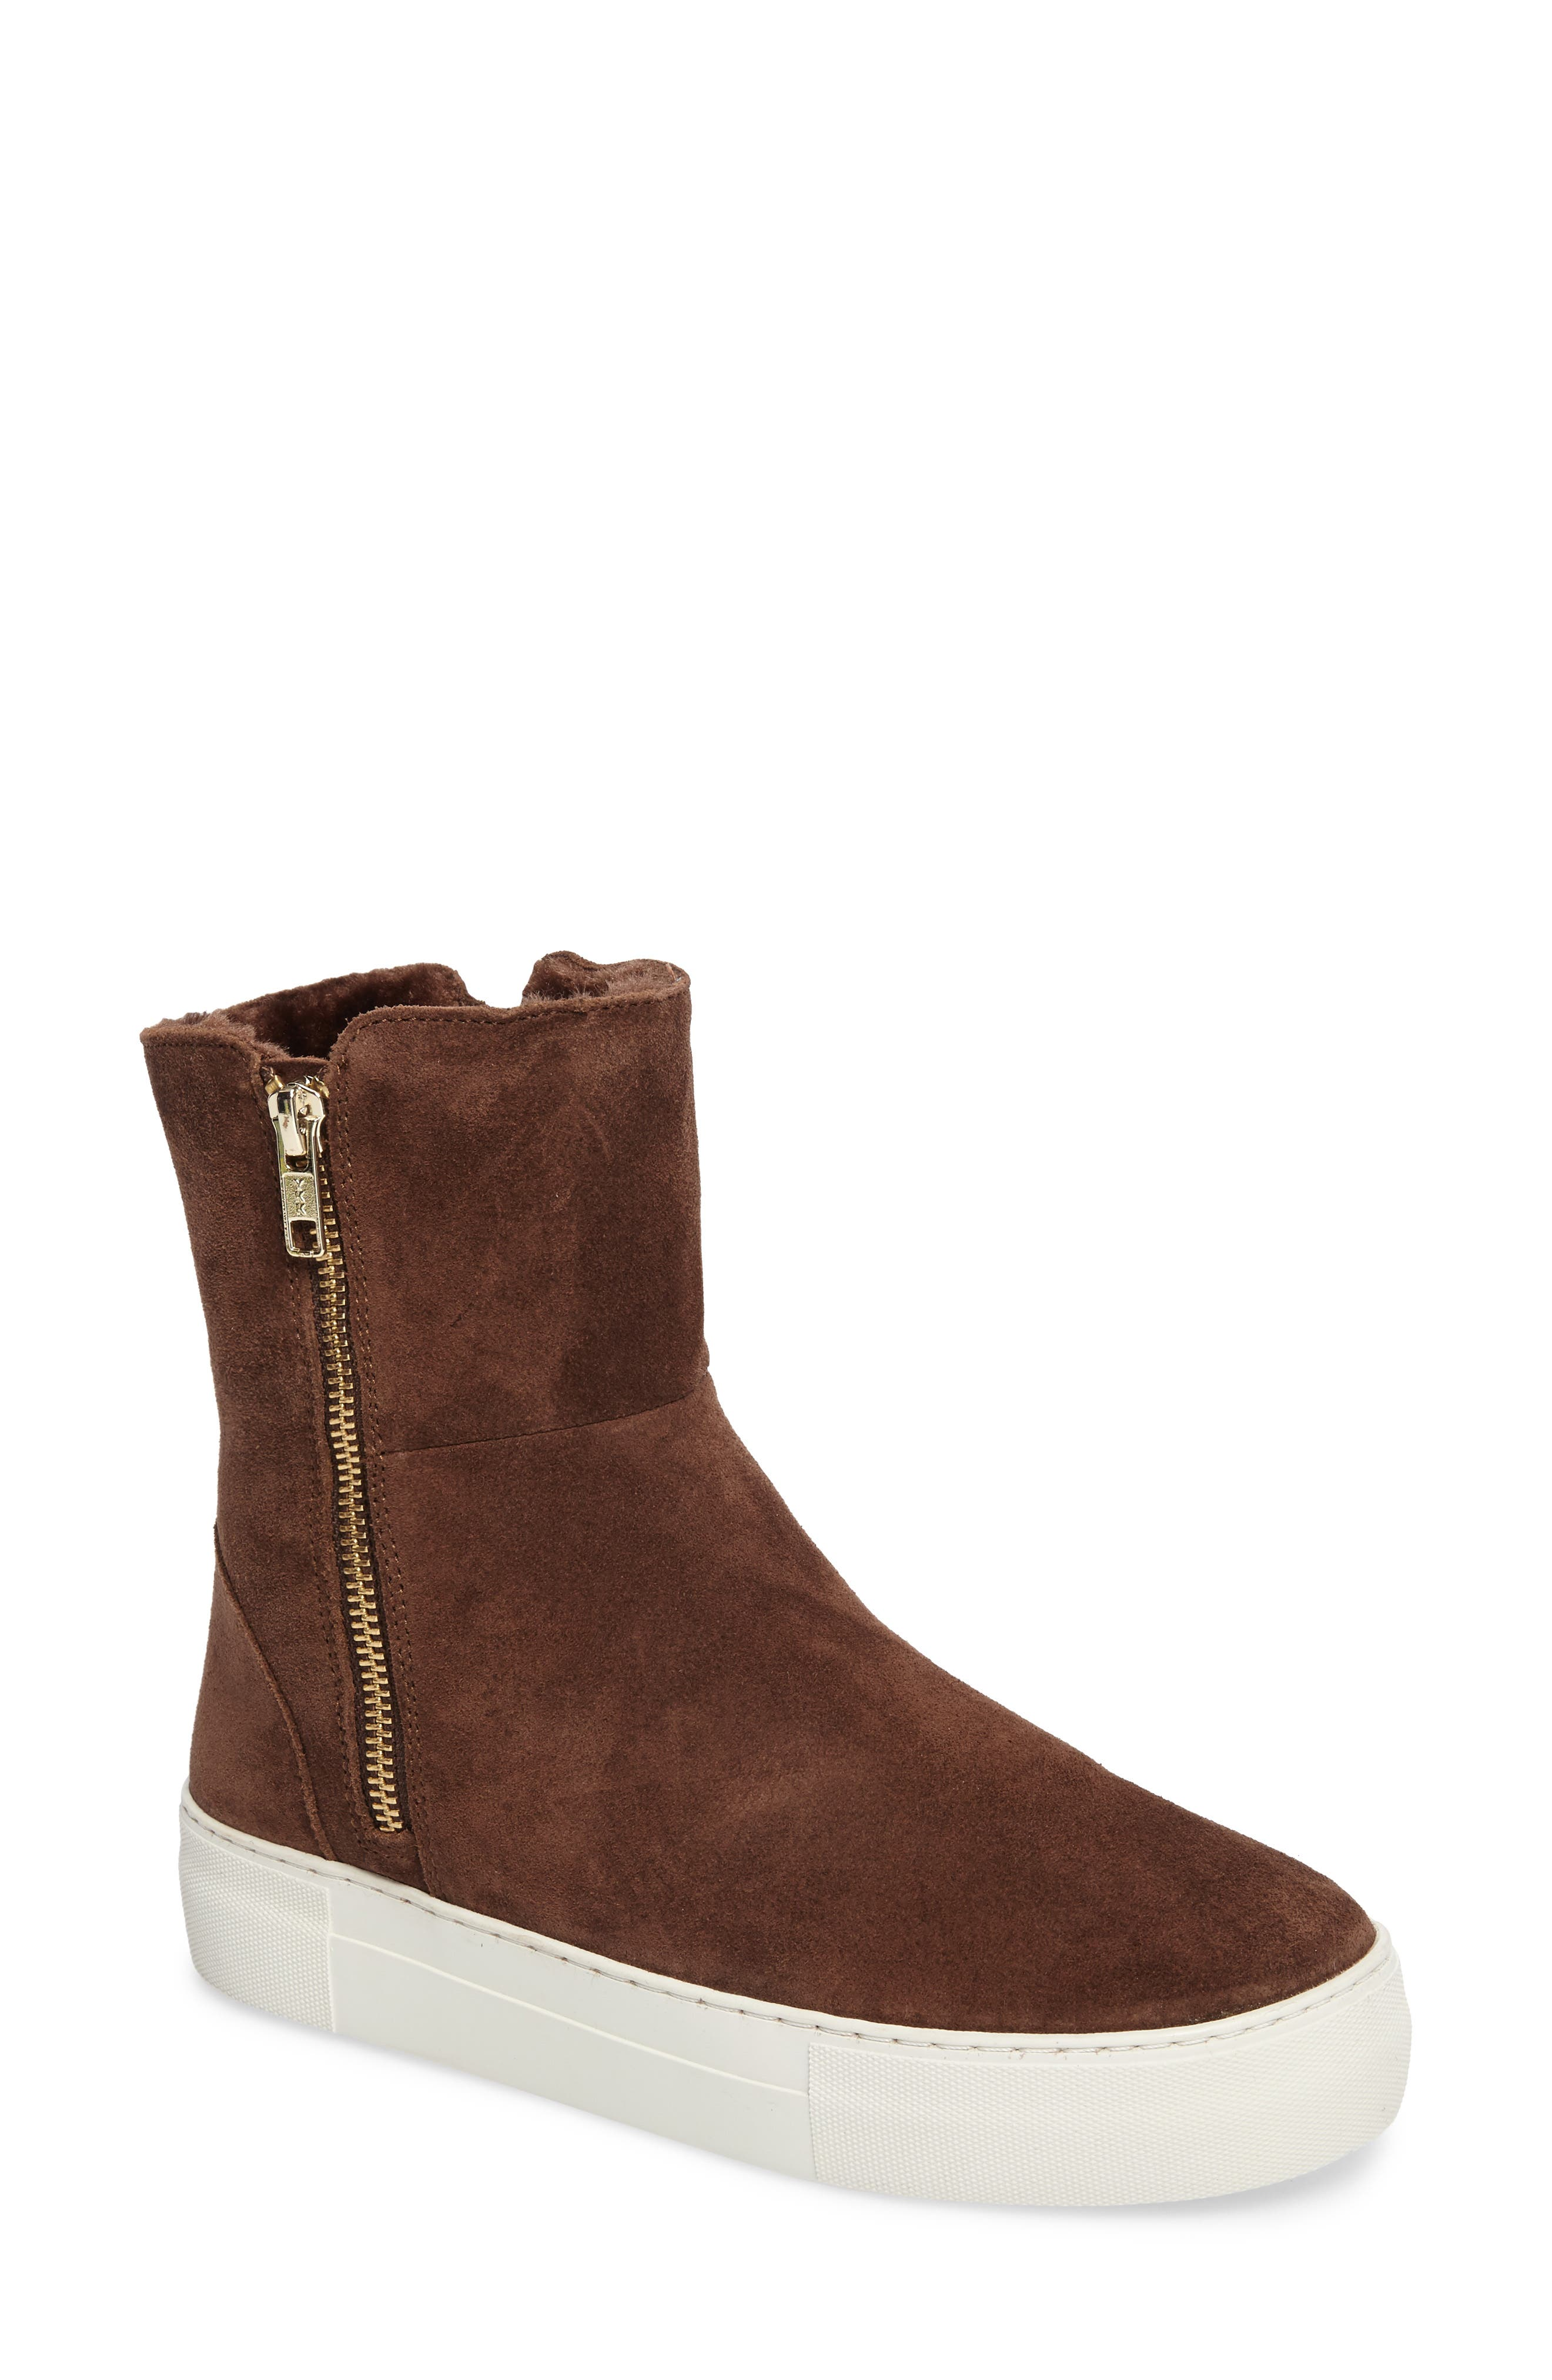 Allie Faux Fur Lined Platform Boot,                             Main thumbnail 1, color,                             BROWN SUEDE